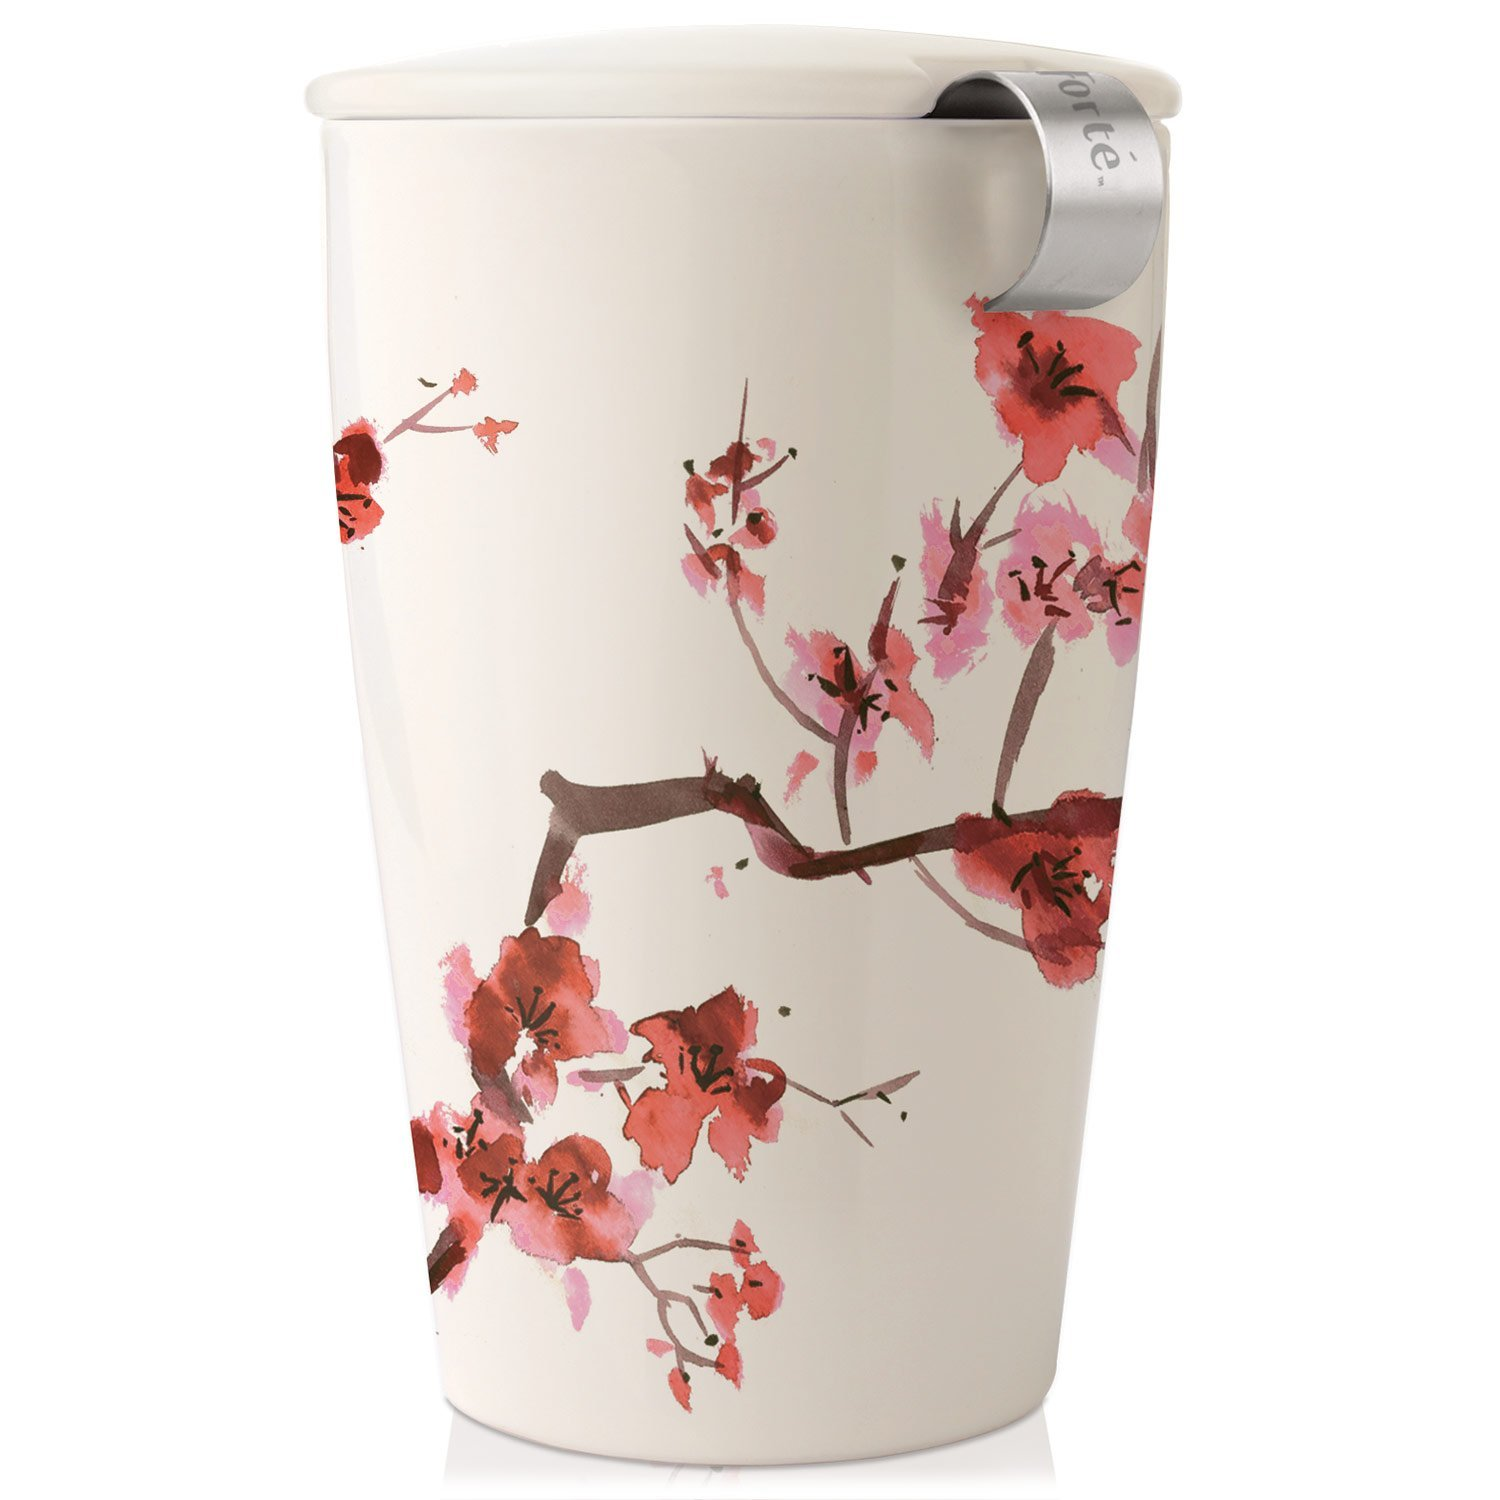 Tea Forte Kati® Cherry Blossom Teacup